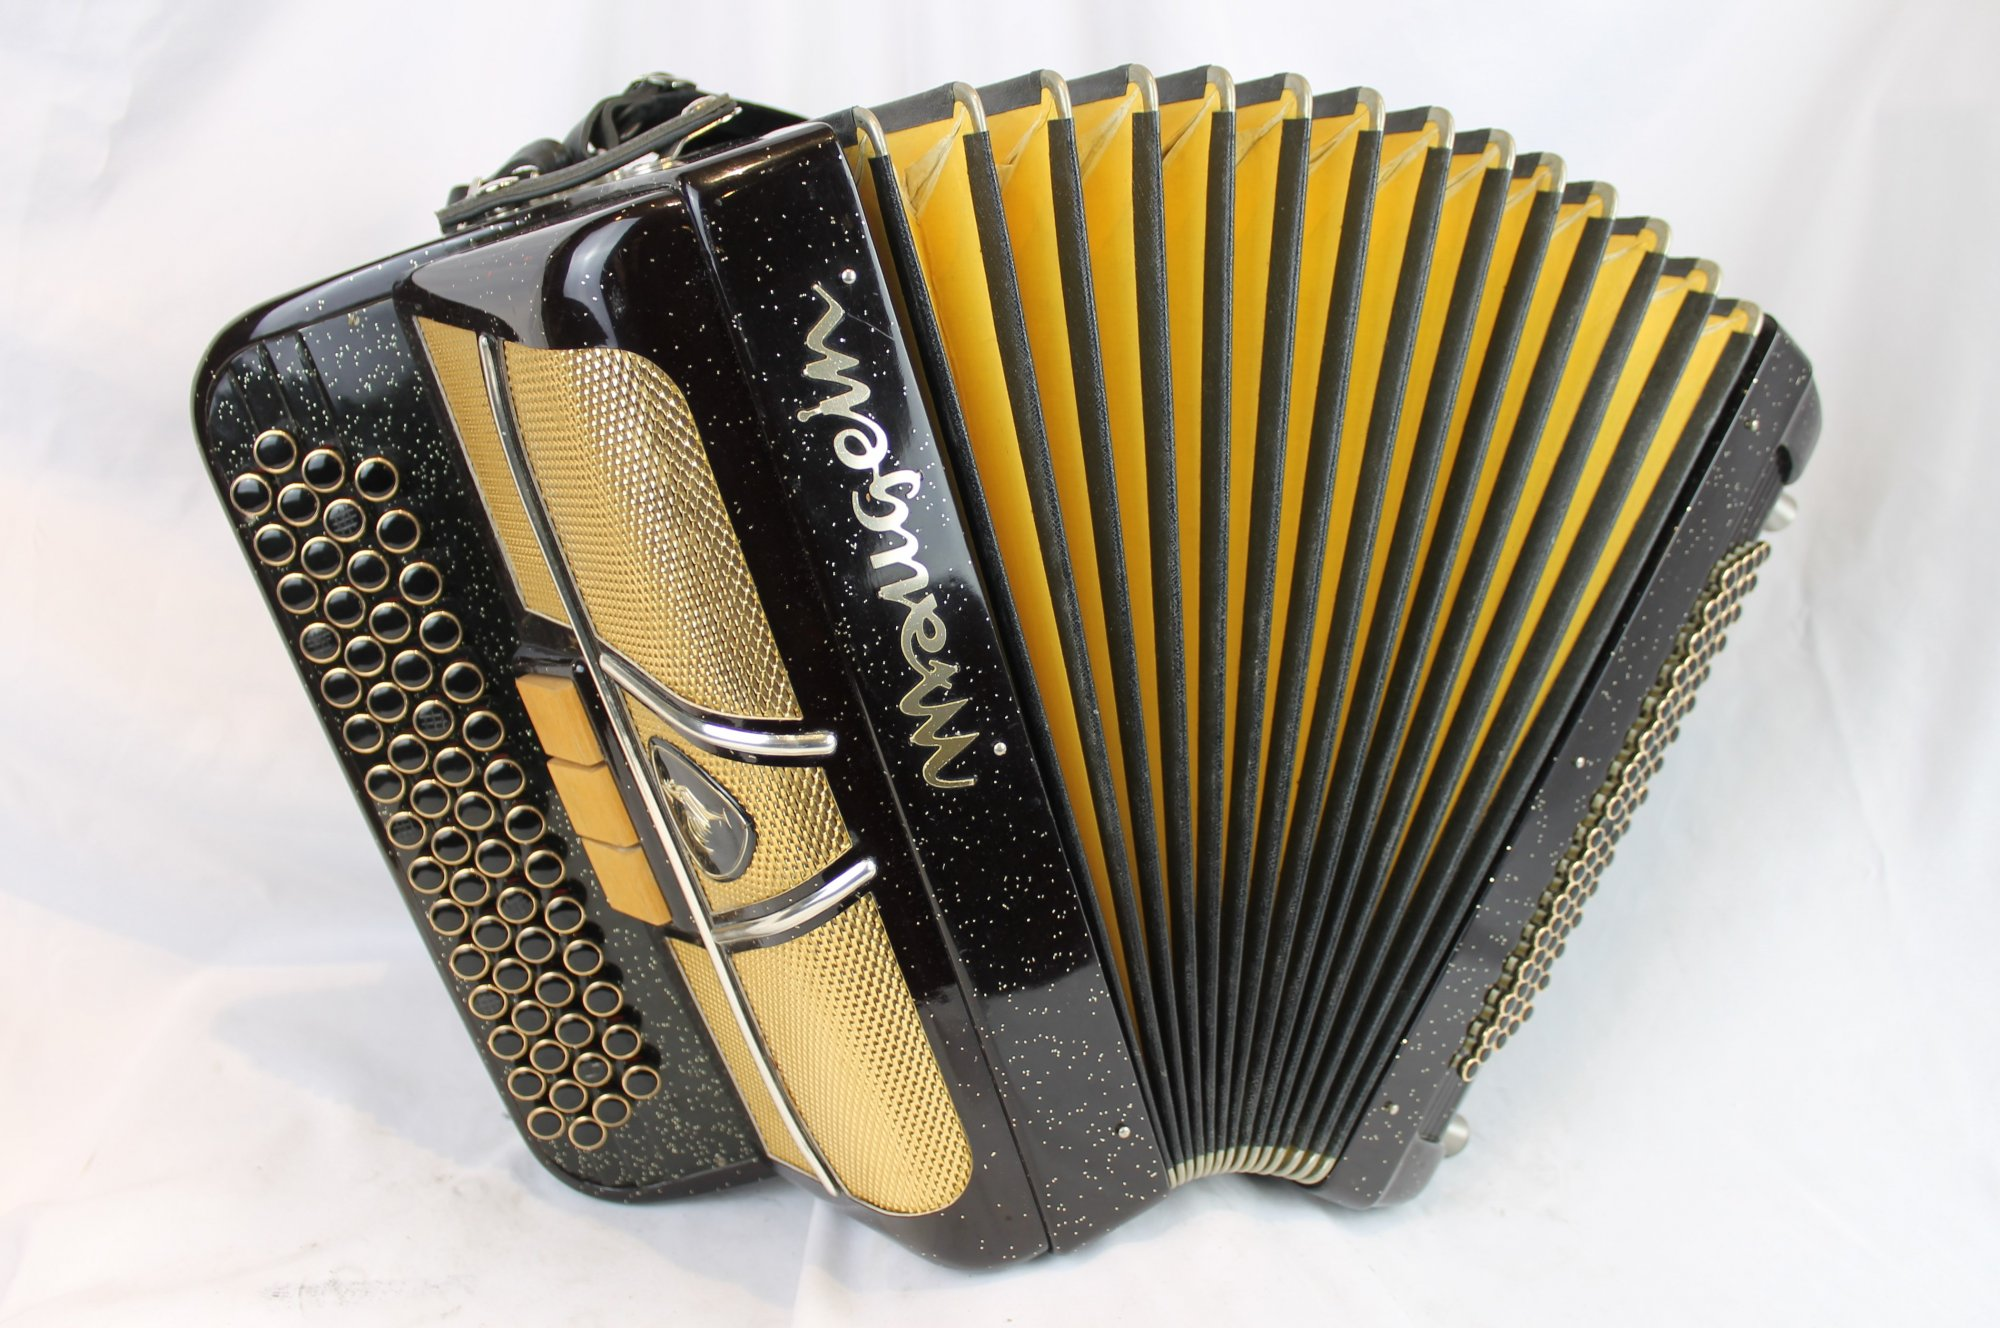 3995 - Black Gold Sparkle Maugein French C System Chromatic Button Accordion MM 60 80